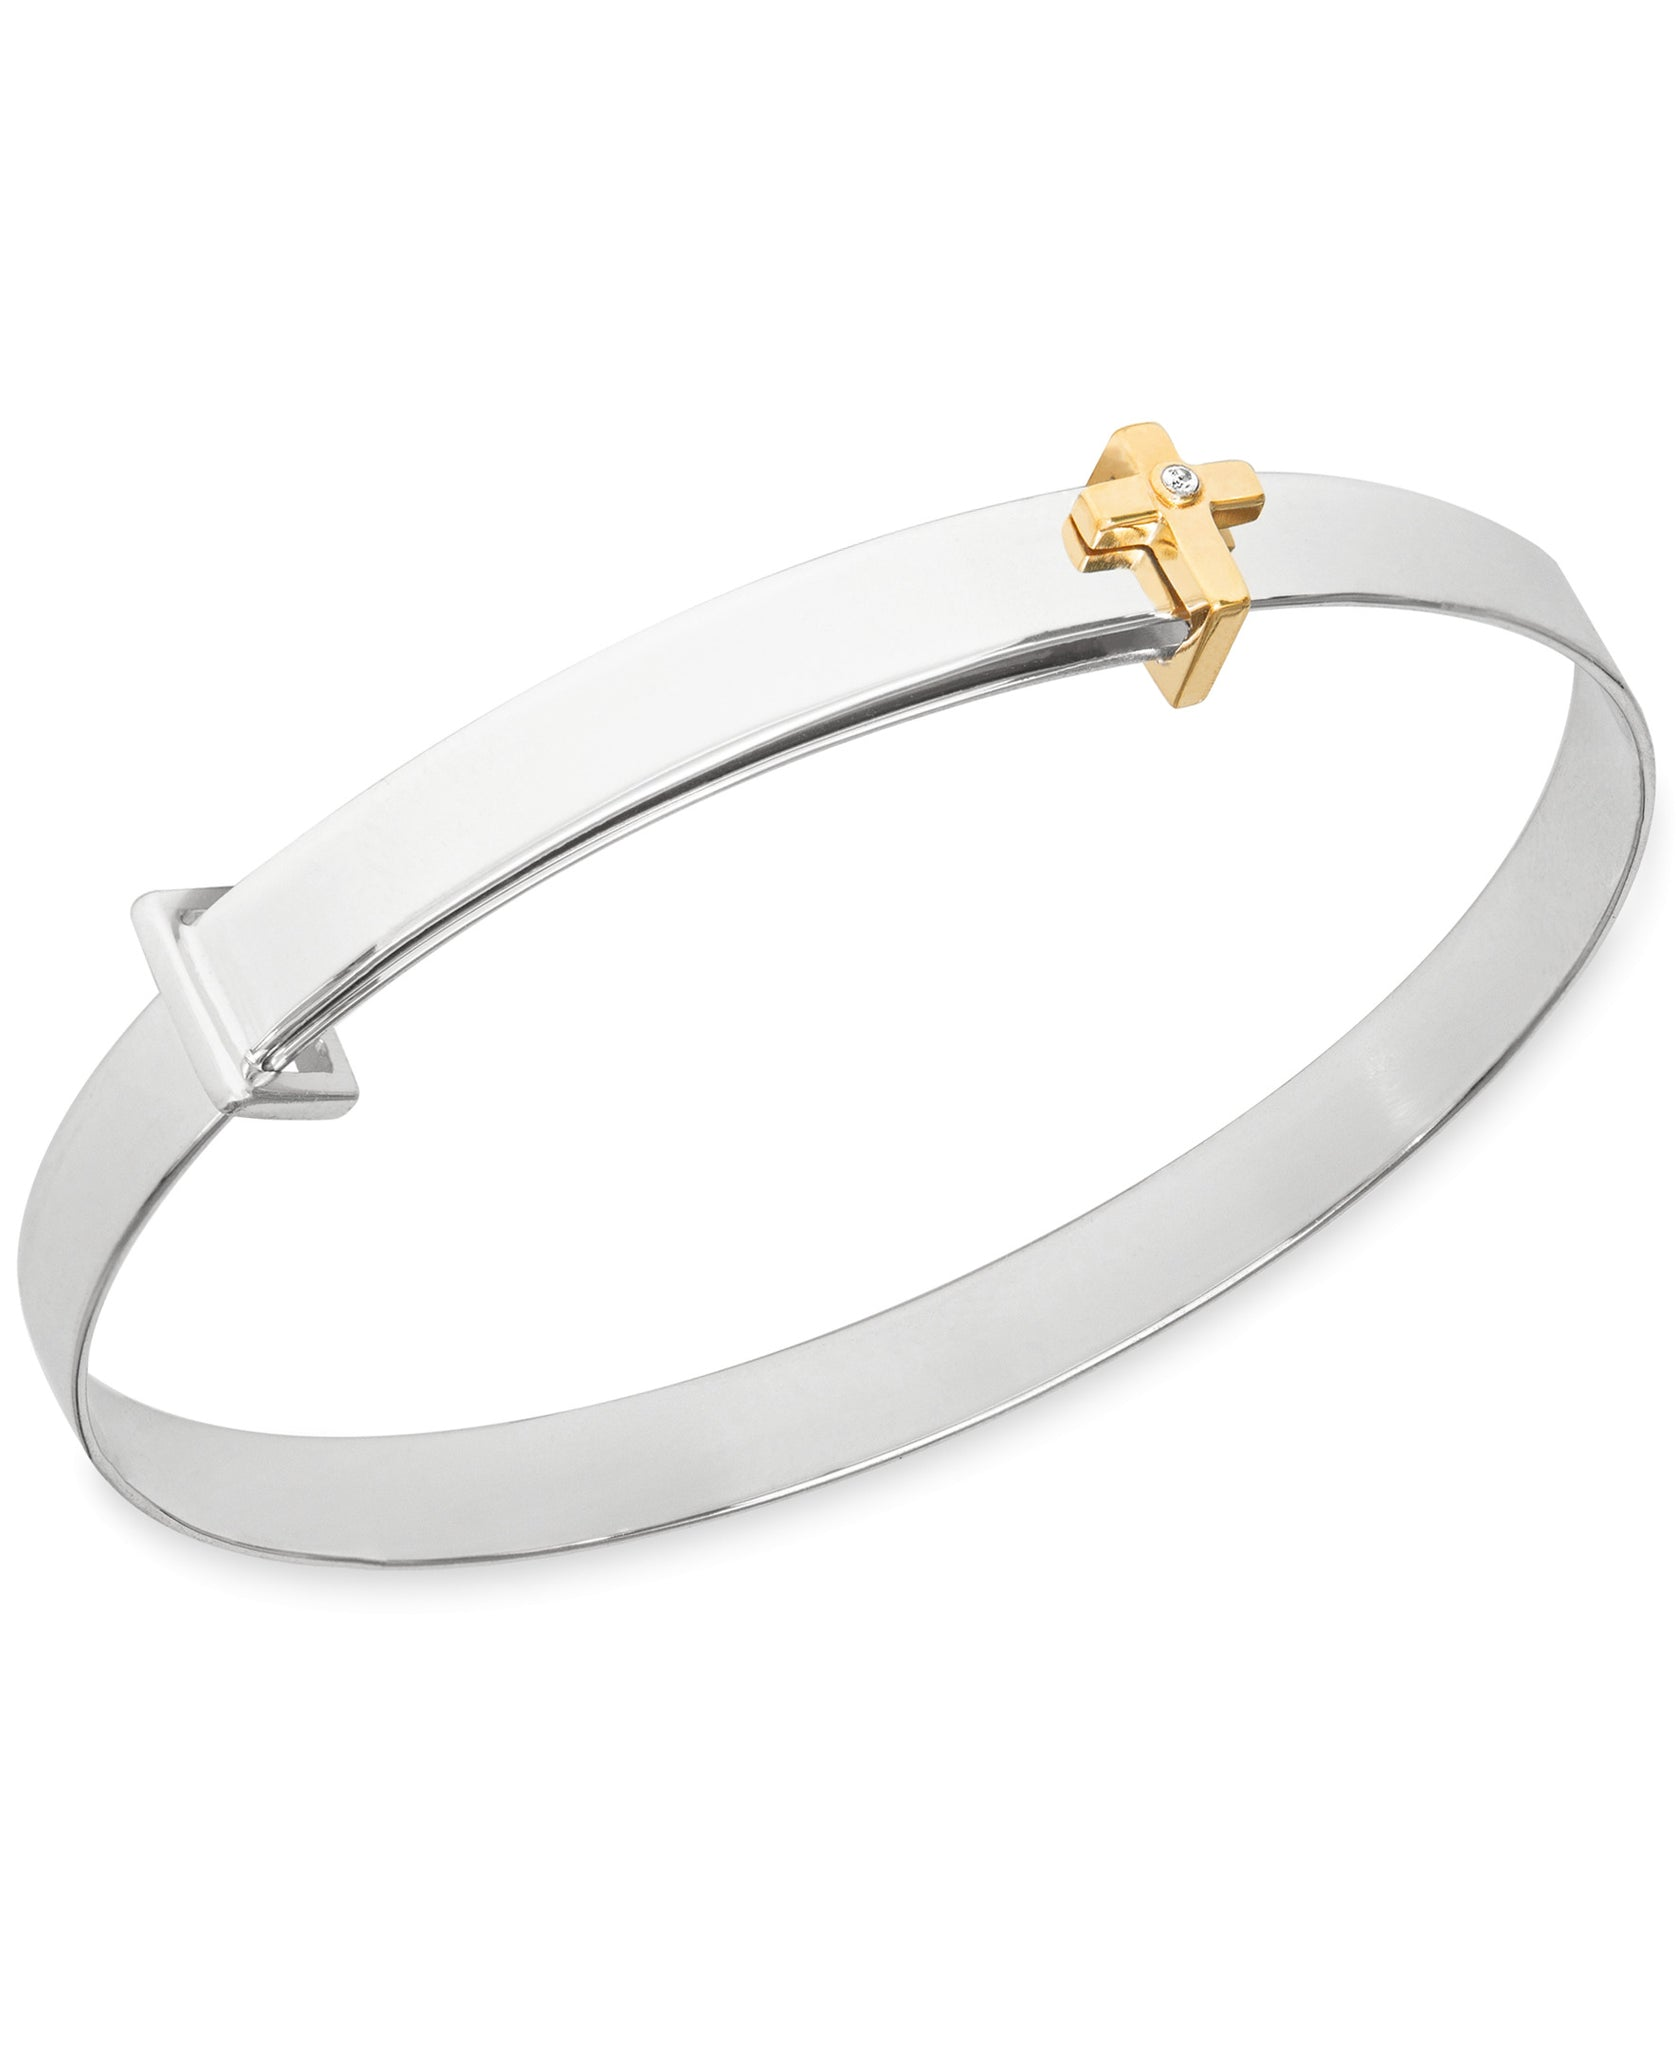 Children's Diamond Accent Cross Expander Bangle Bracelet in Sterling Silver & 14K Gold over Silver - Rhona Sutton Jewellery